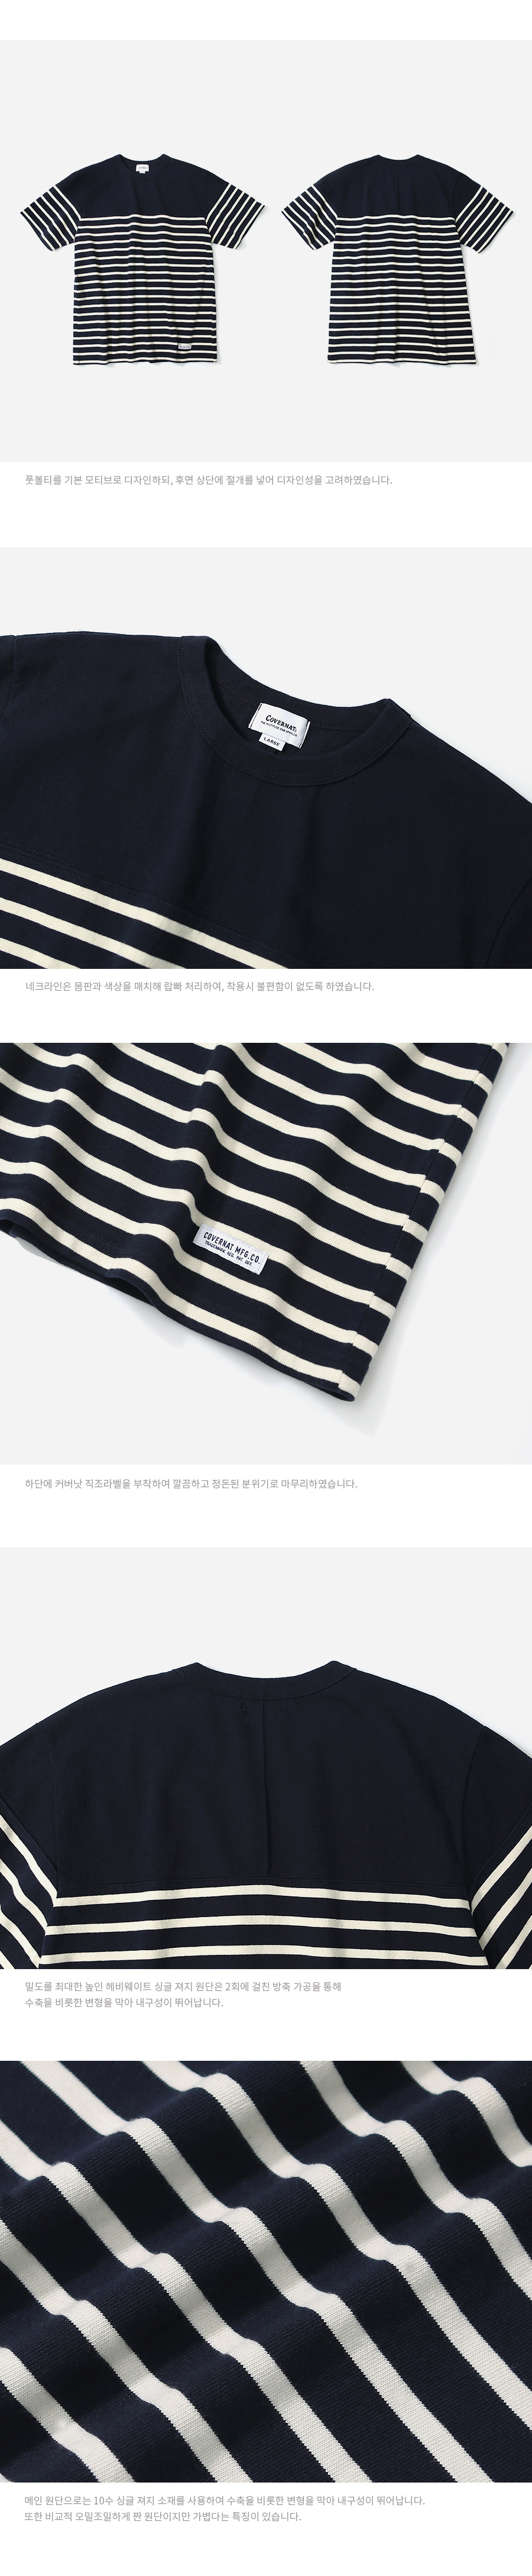 커버낫(COVERNAT) S/S STRIPE FOOTBALL T-SHIRTS NAVY